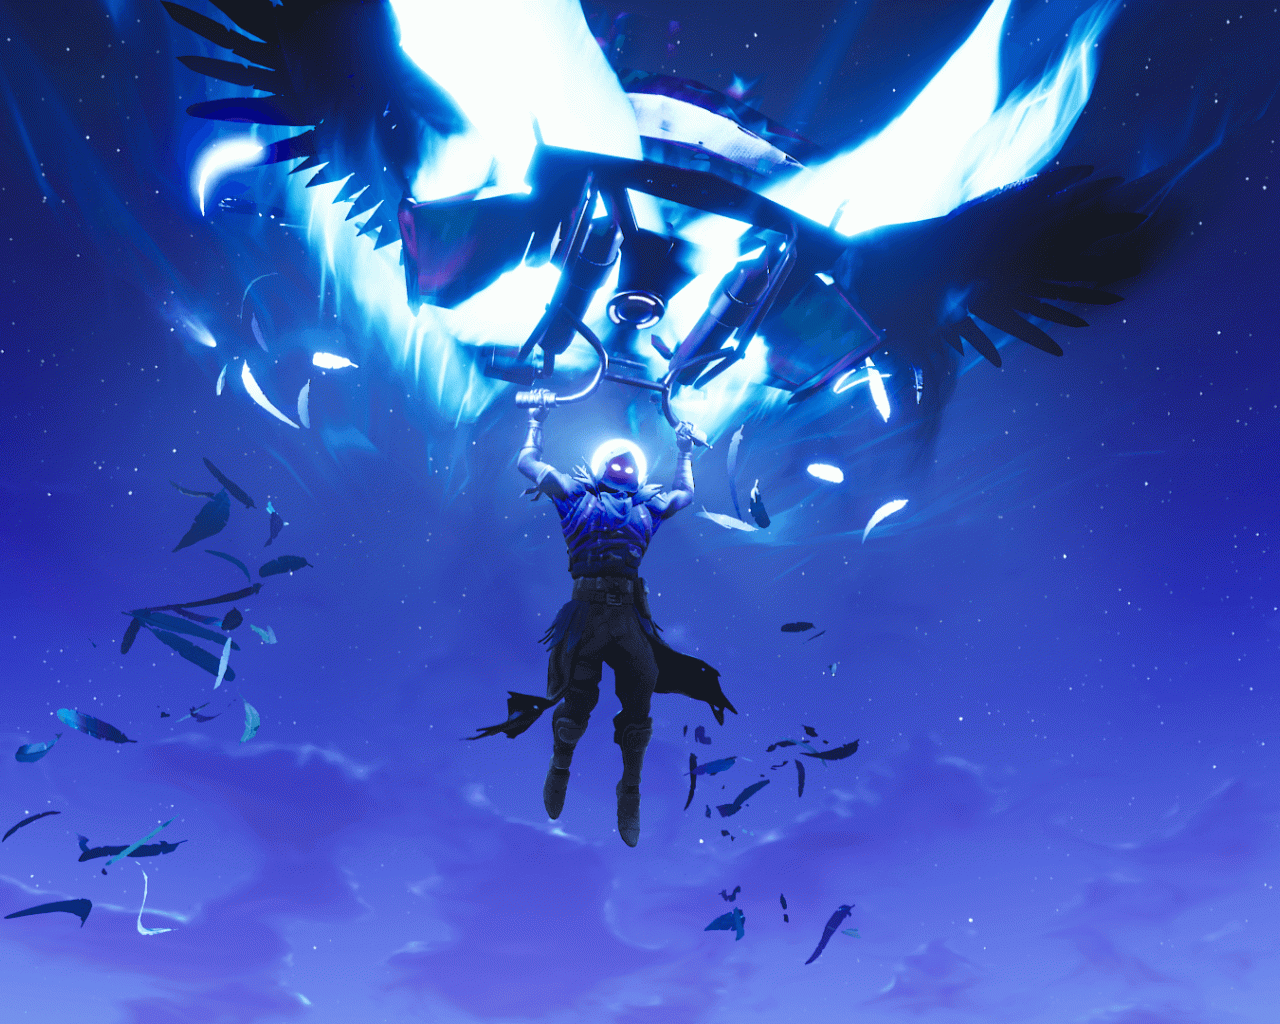 Free Download Fortnite Raven Wallpapers Top Fortnite Raven Backgrounds 1920x1080 For Your Desktop Mobile Tablet Explore 24 Raven Fortnite Wallpapers Raven Fortnite Wallpapers Frozen Raven Fortnite Wallpapers Raven Wallpaper